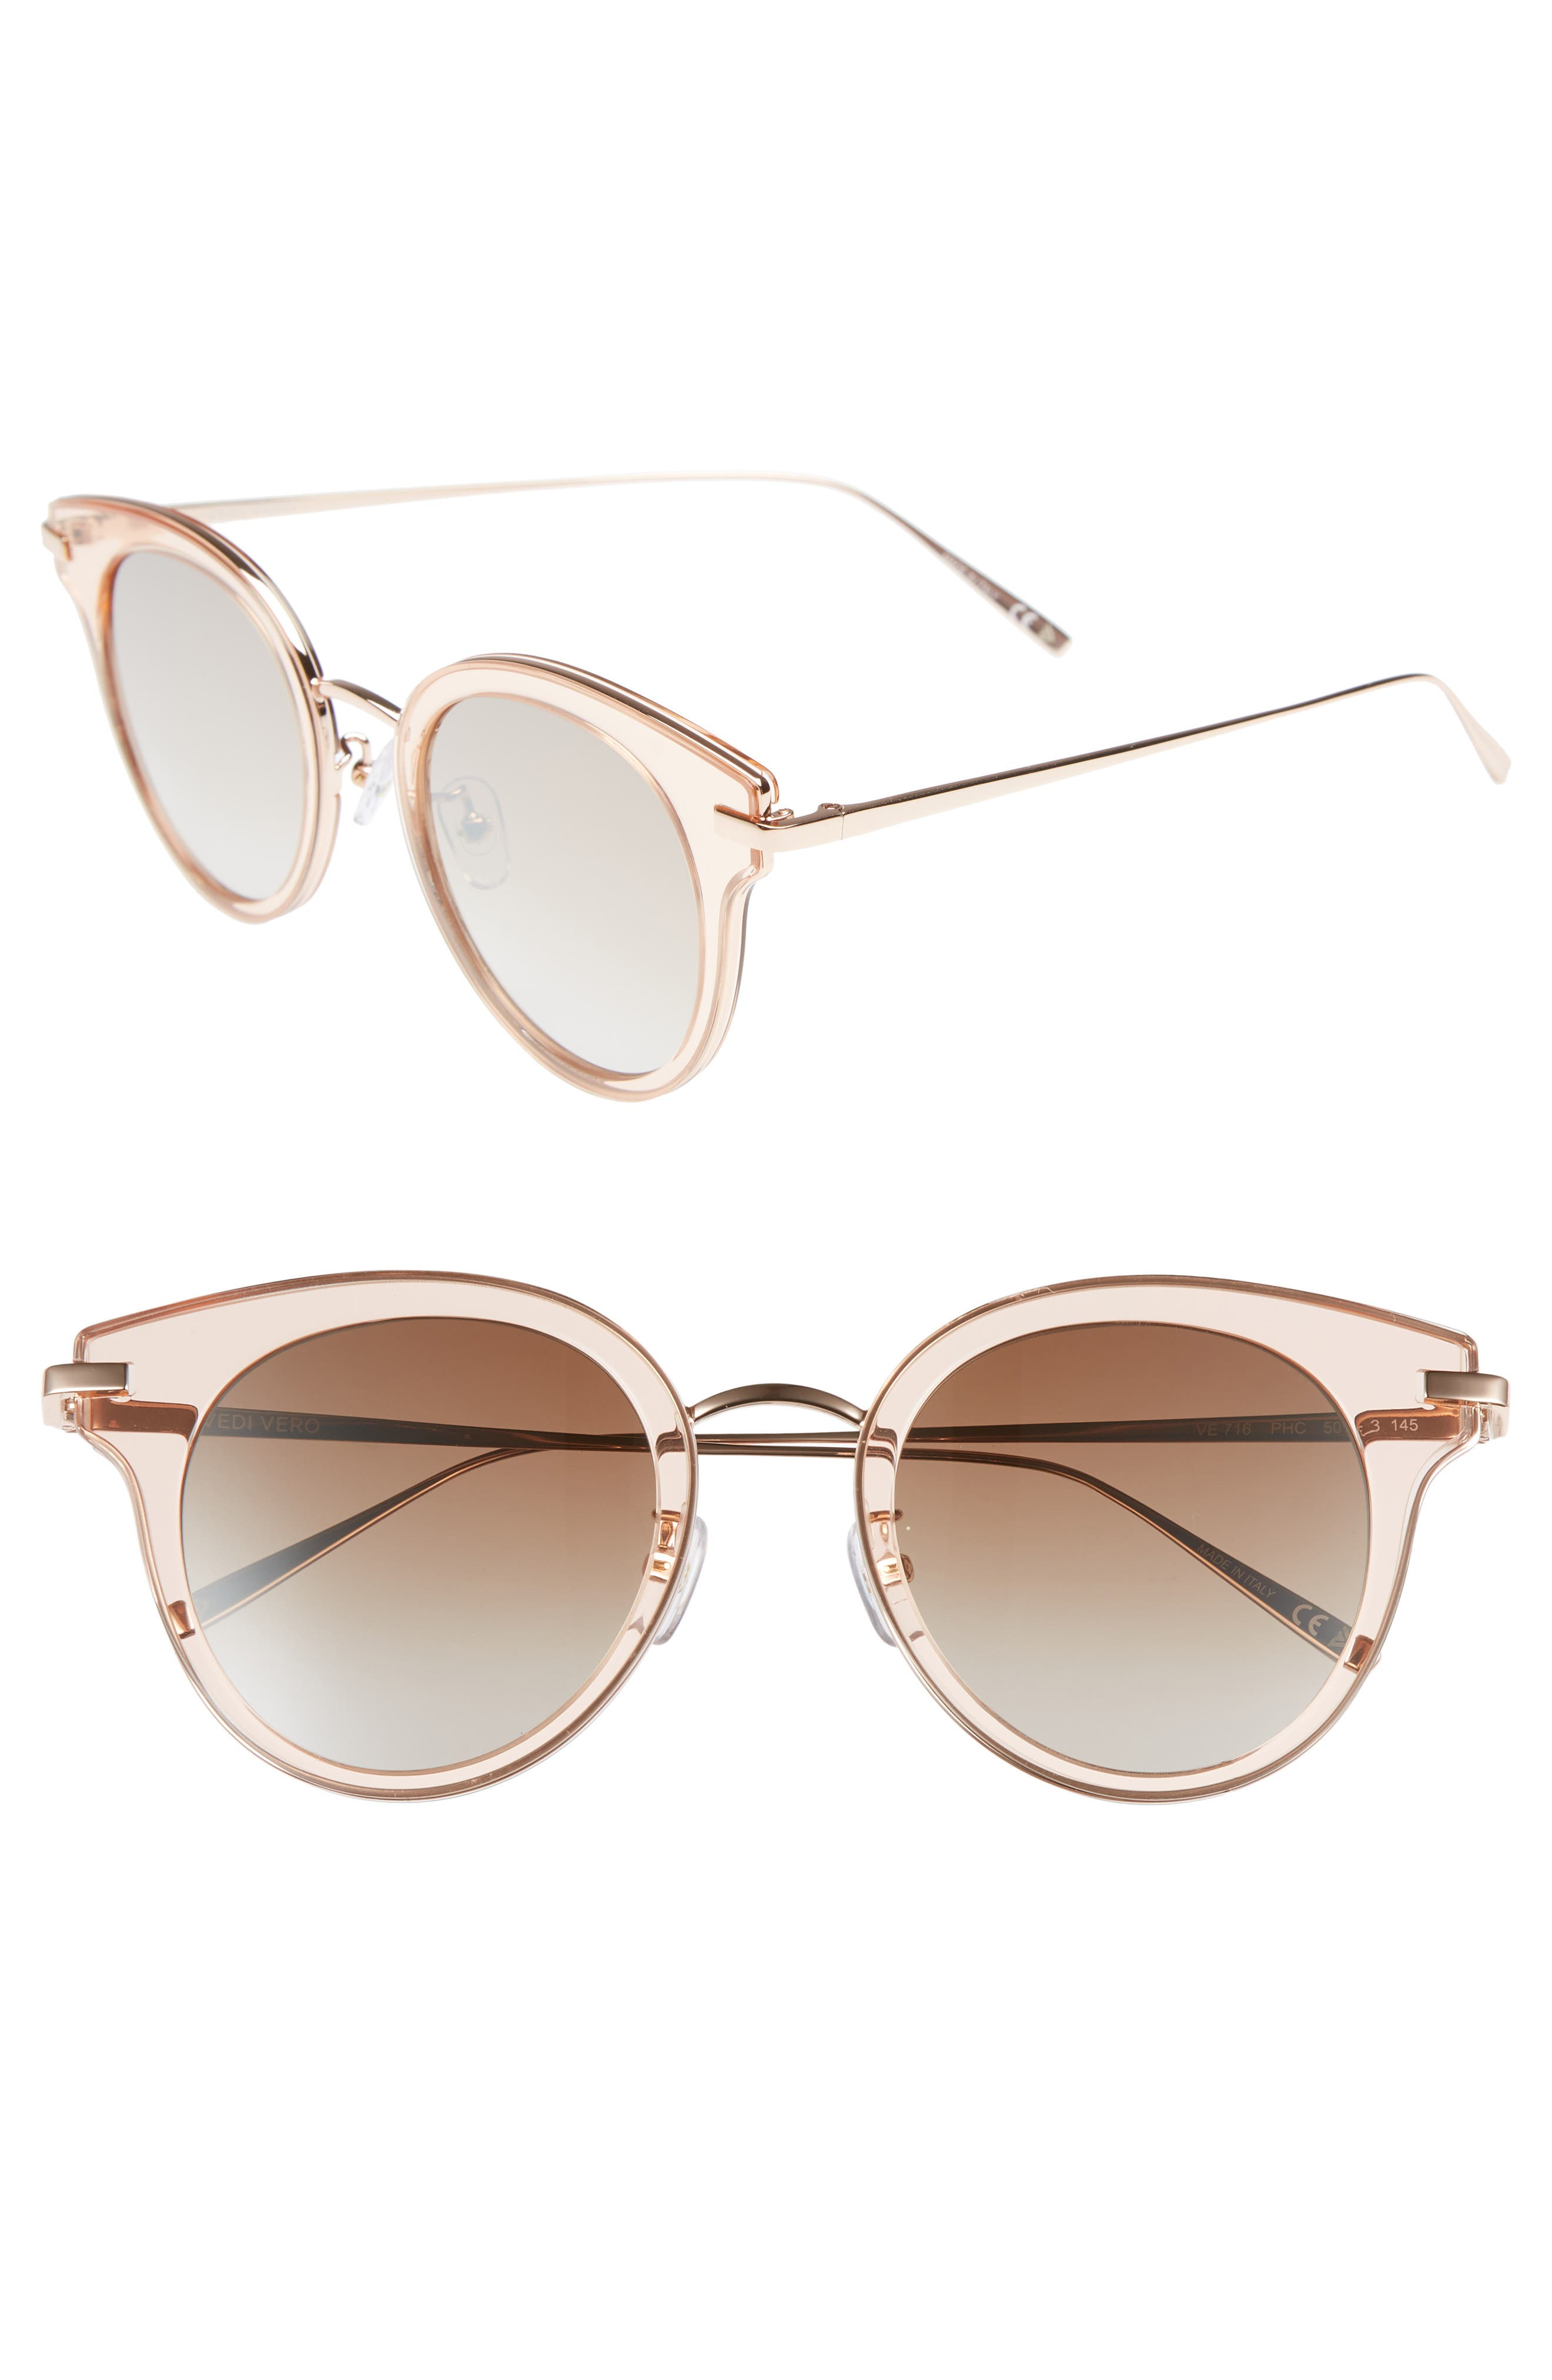 50mm Round Sunglasses,                         Main,                         color, Rose Gold/Brown Mirror